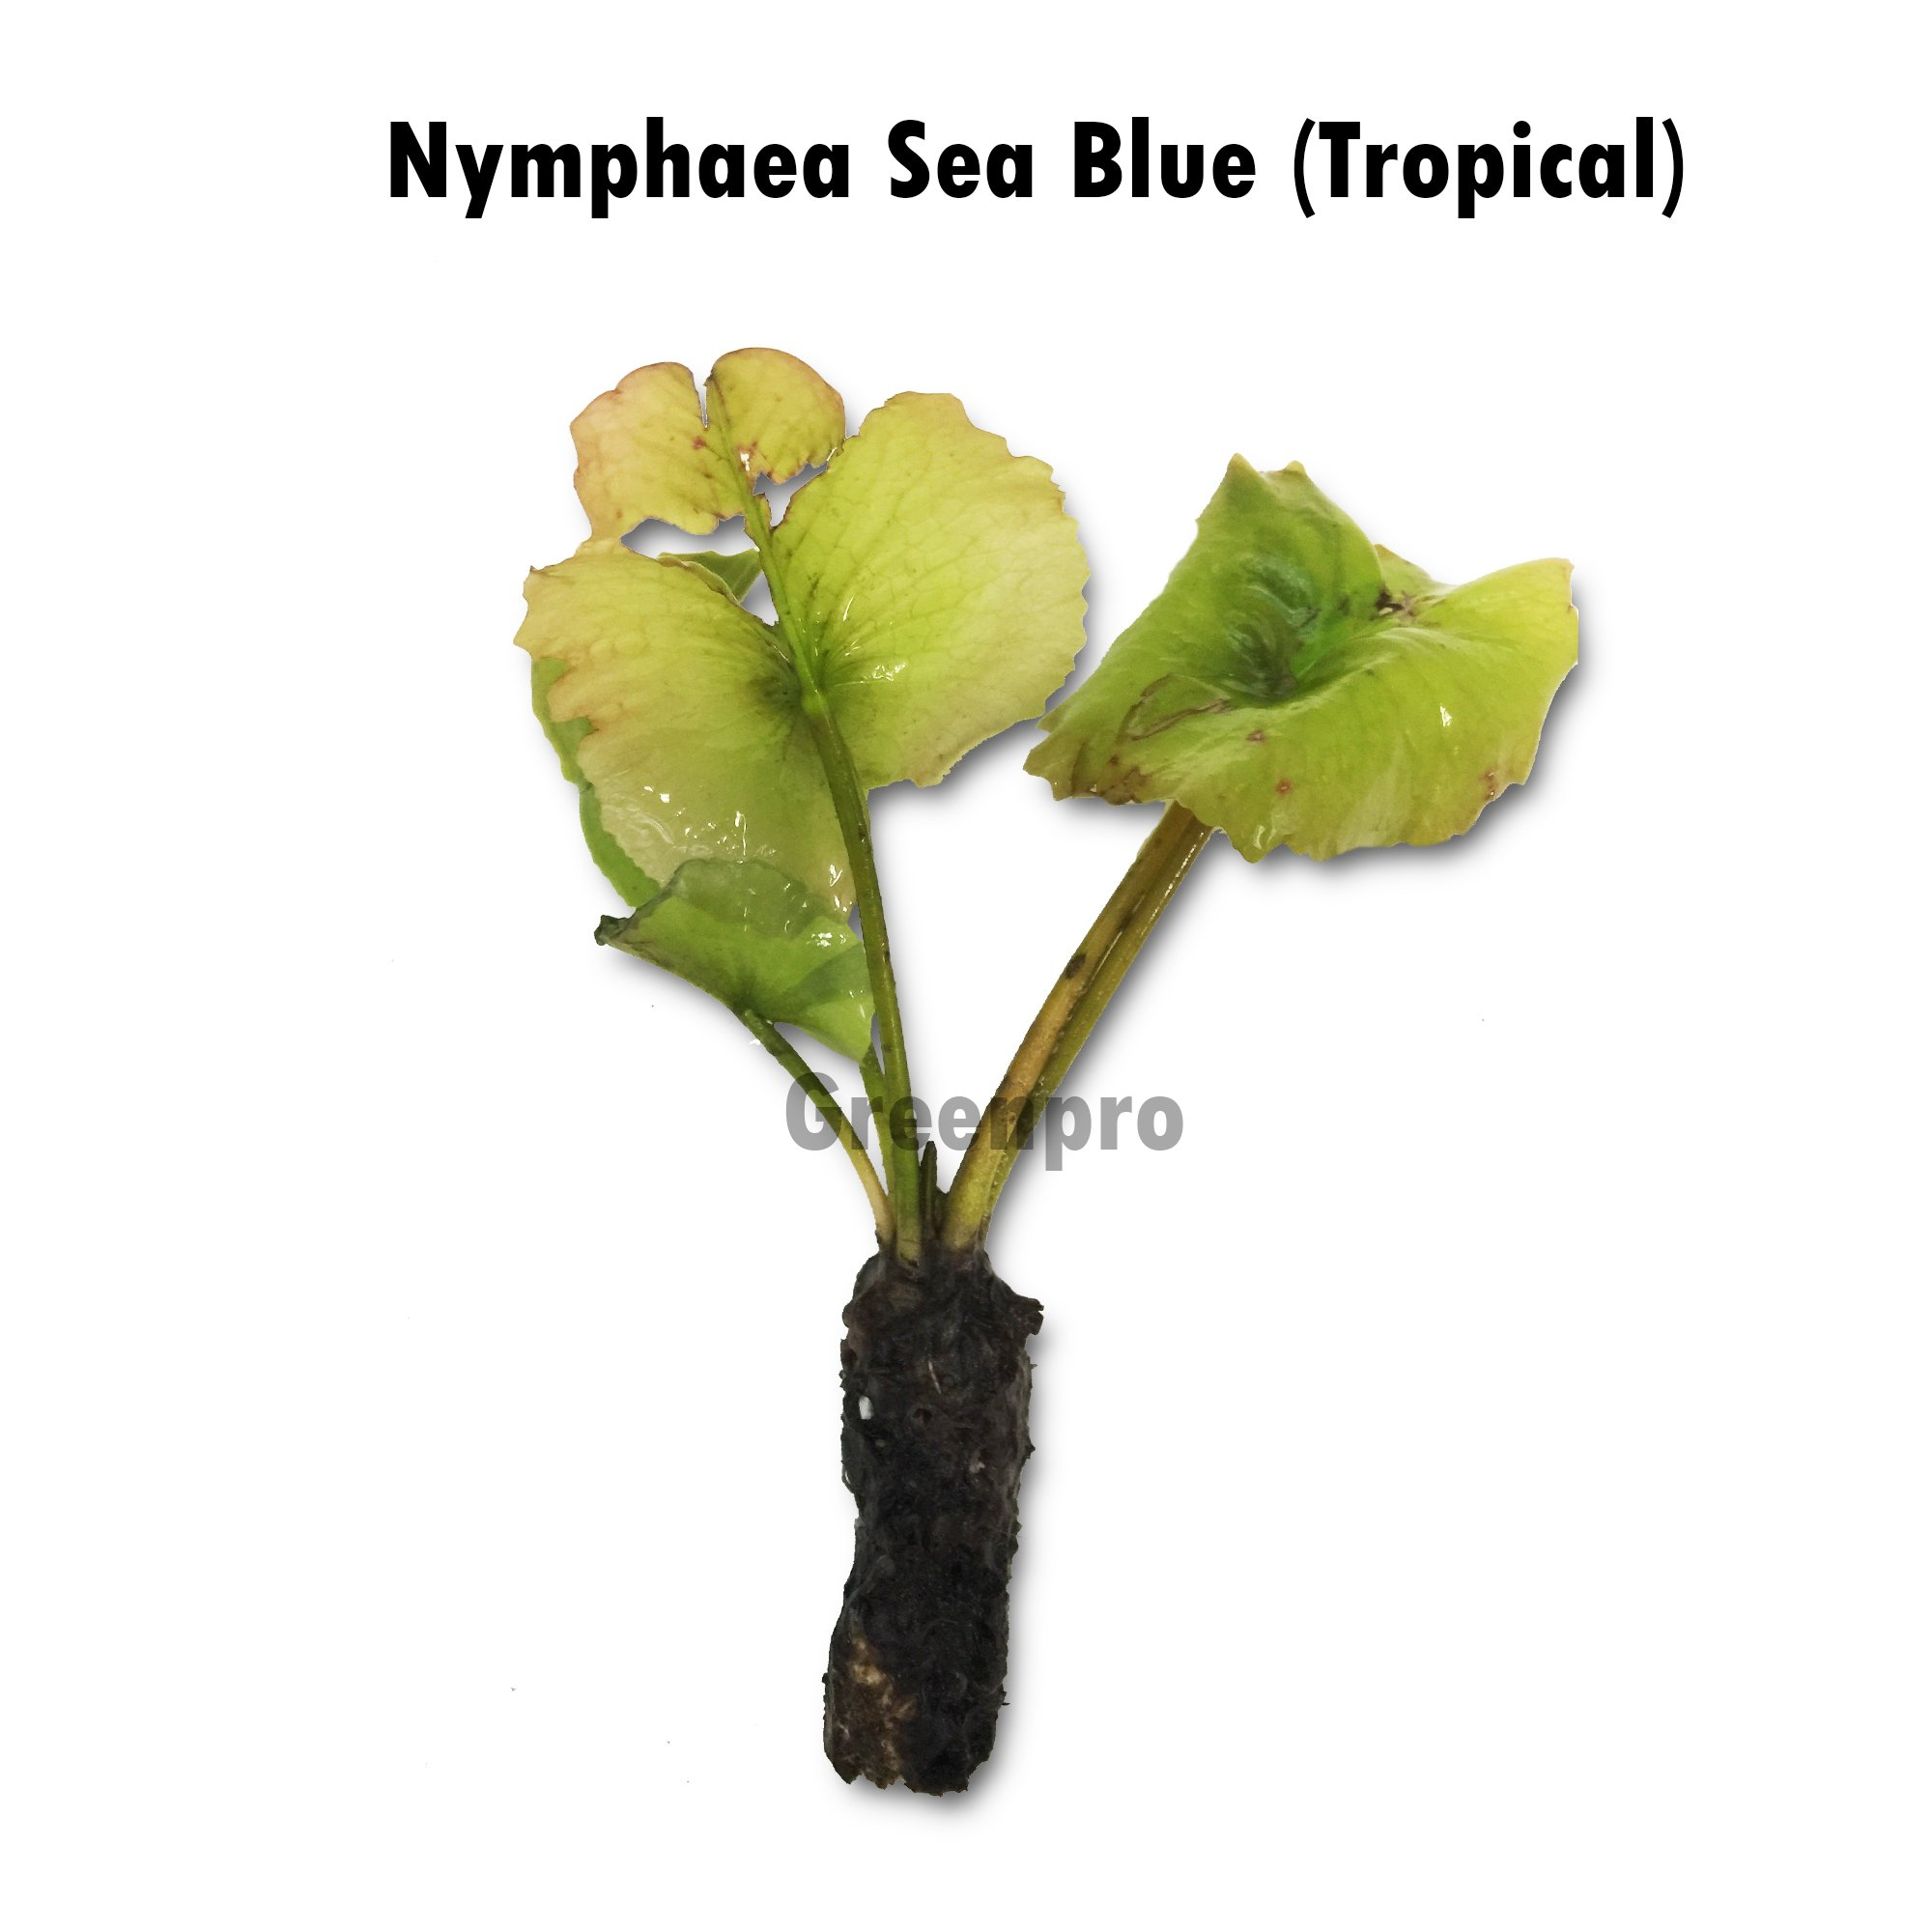 Live Aquatic Plant Nymphaea Sea Blue Ocean Tropical Water Lilies Tuber for Aquarium Freshwater Fish Pond by Greenpro by Greenpro (Image #2)